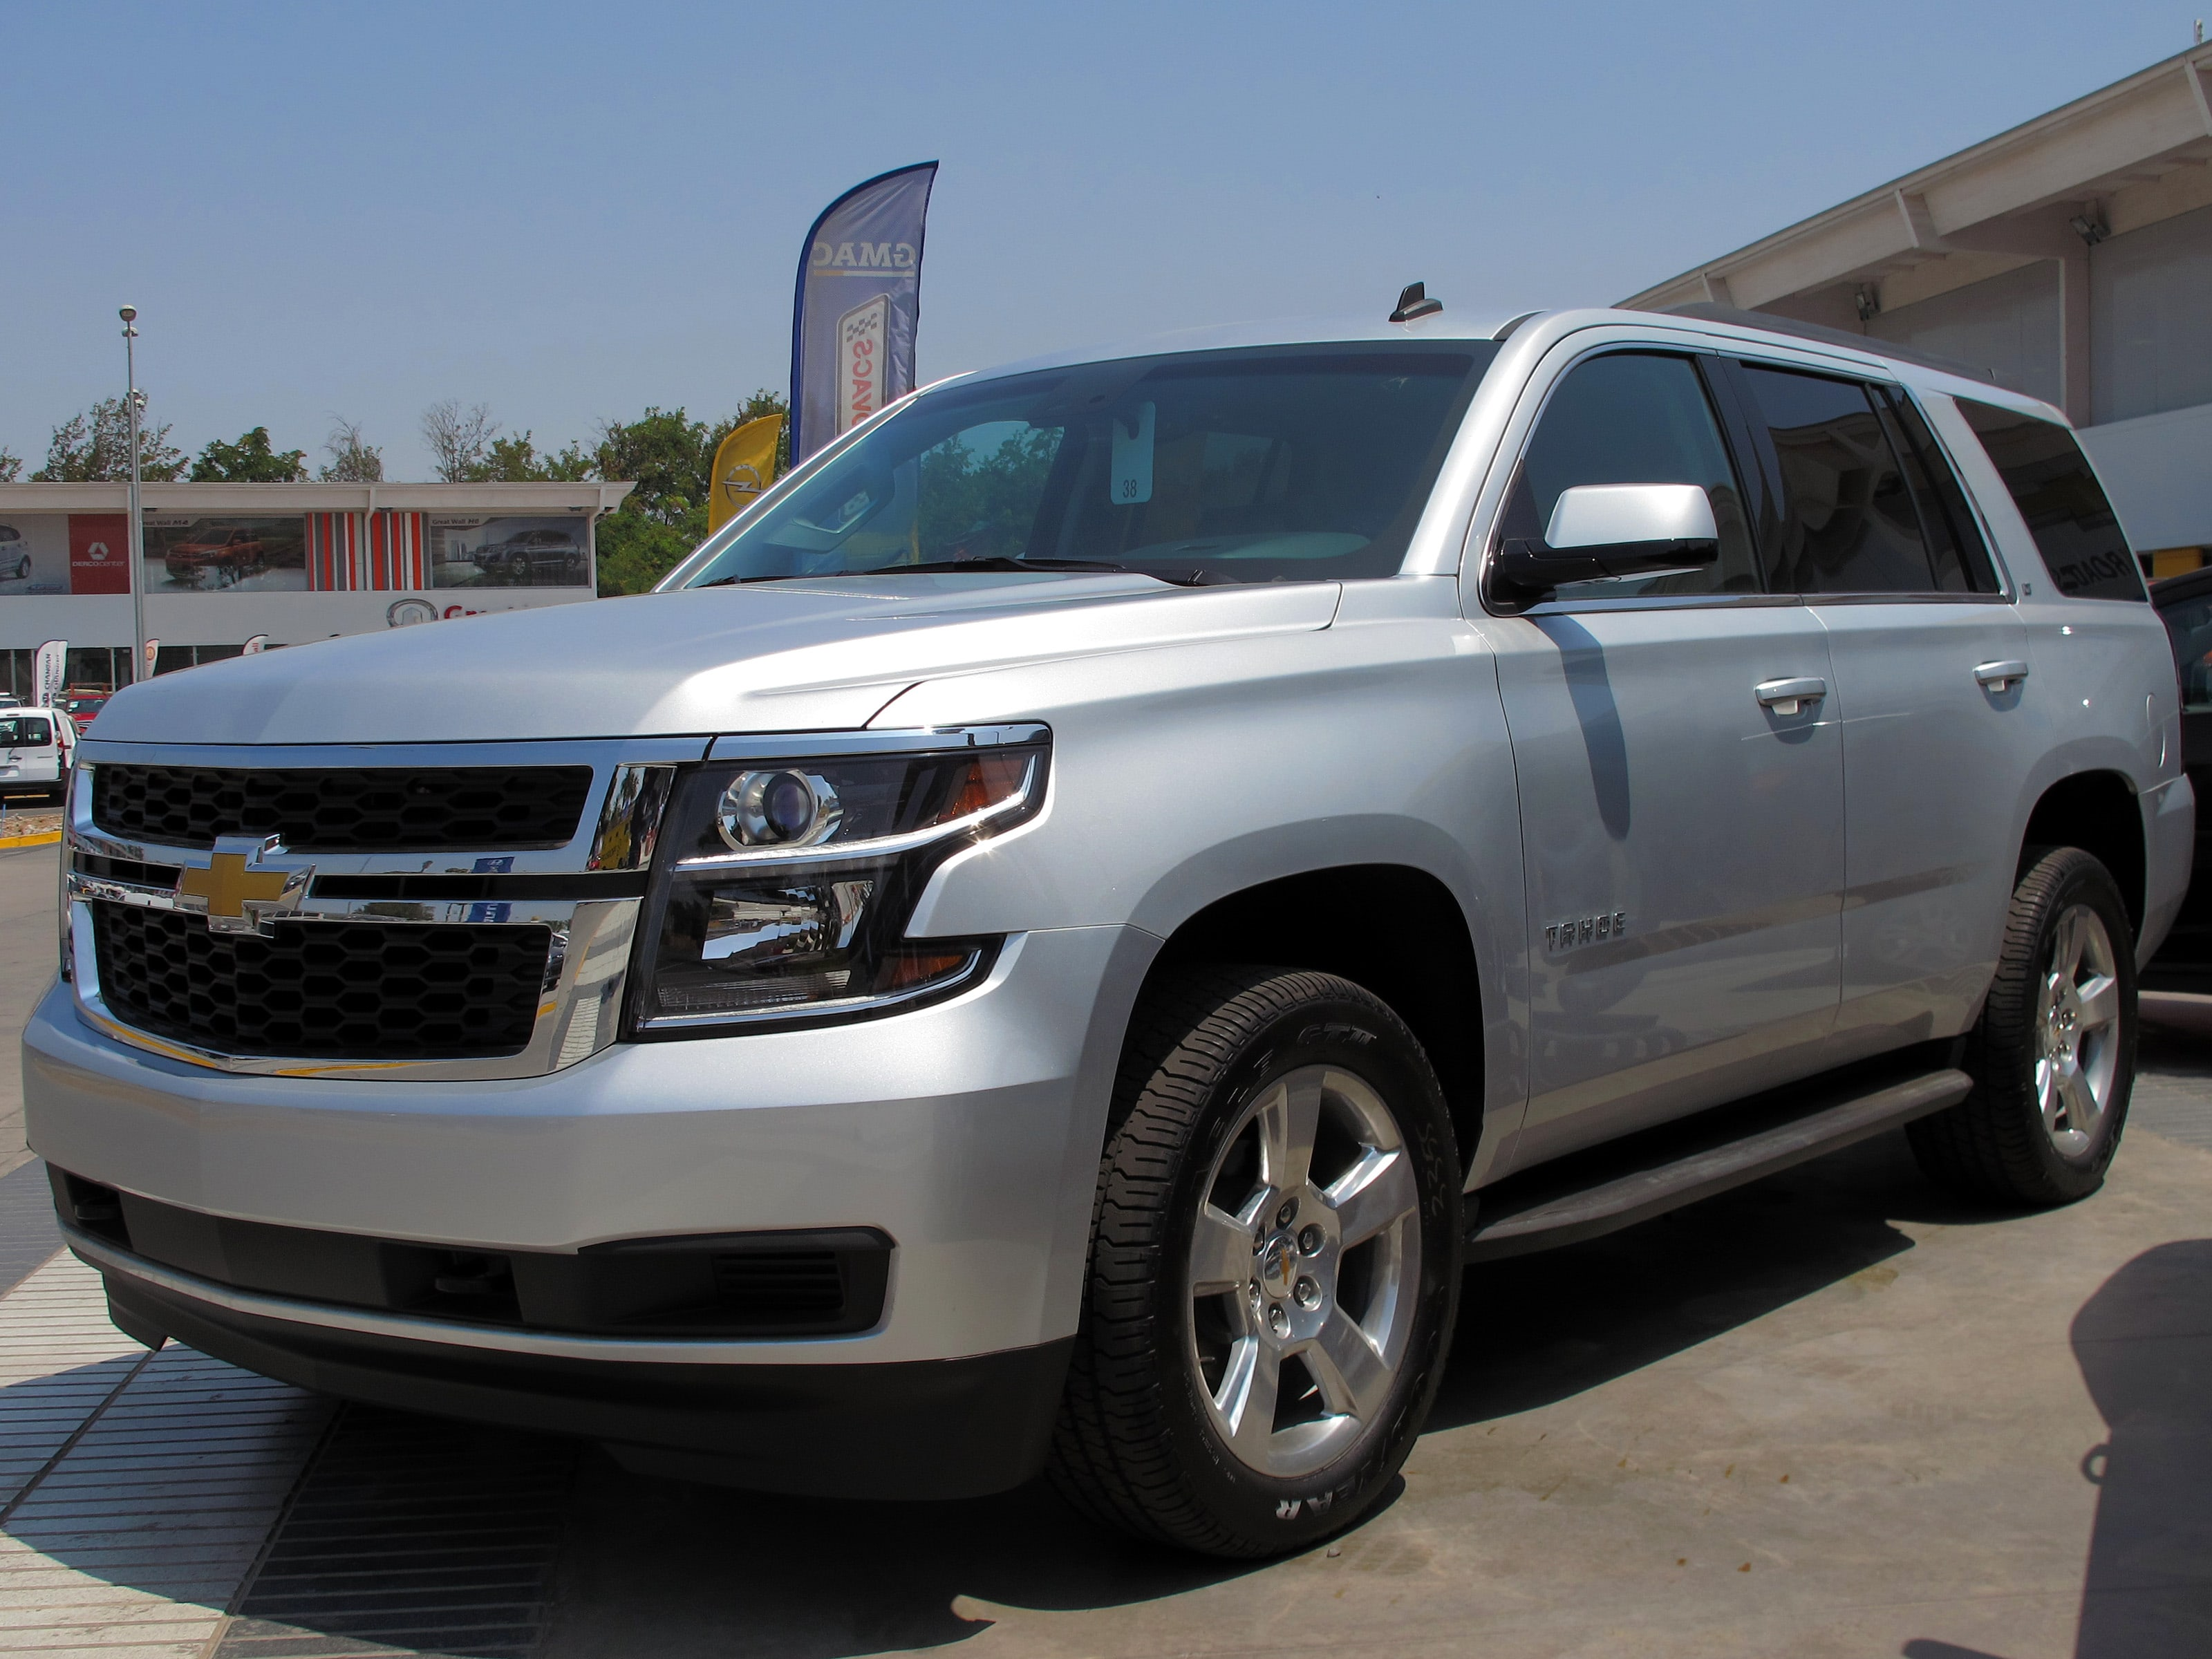 Chevrolet Tahoe 4 Widescreen